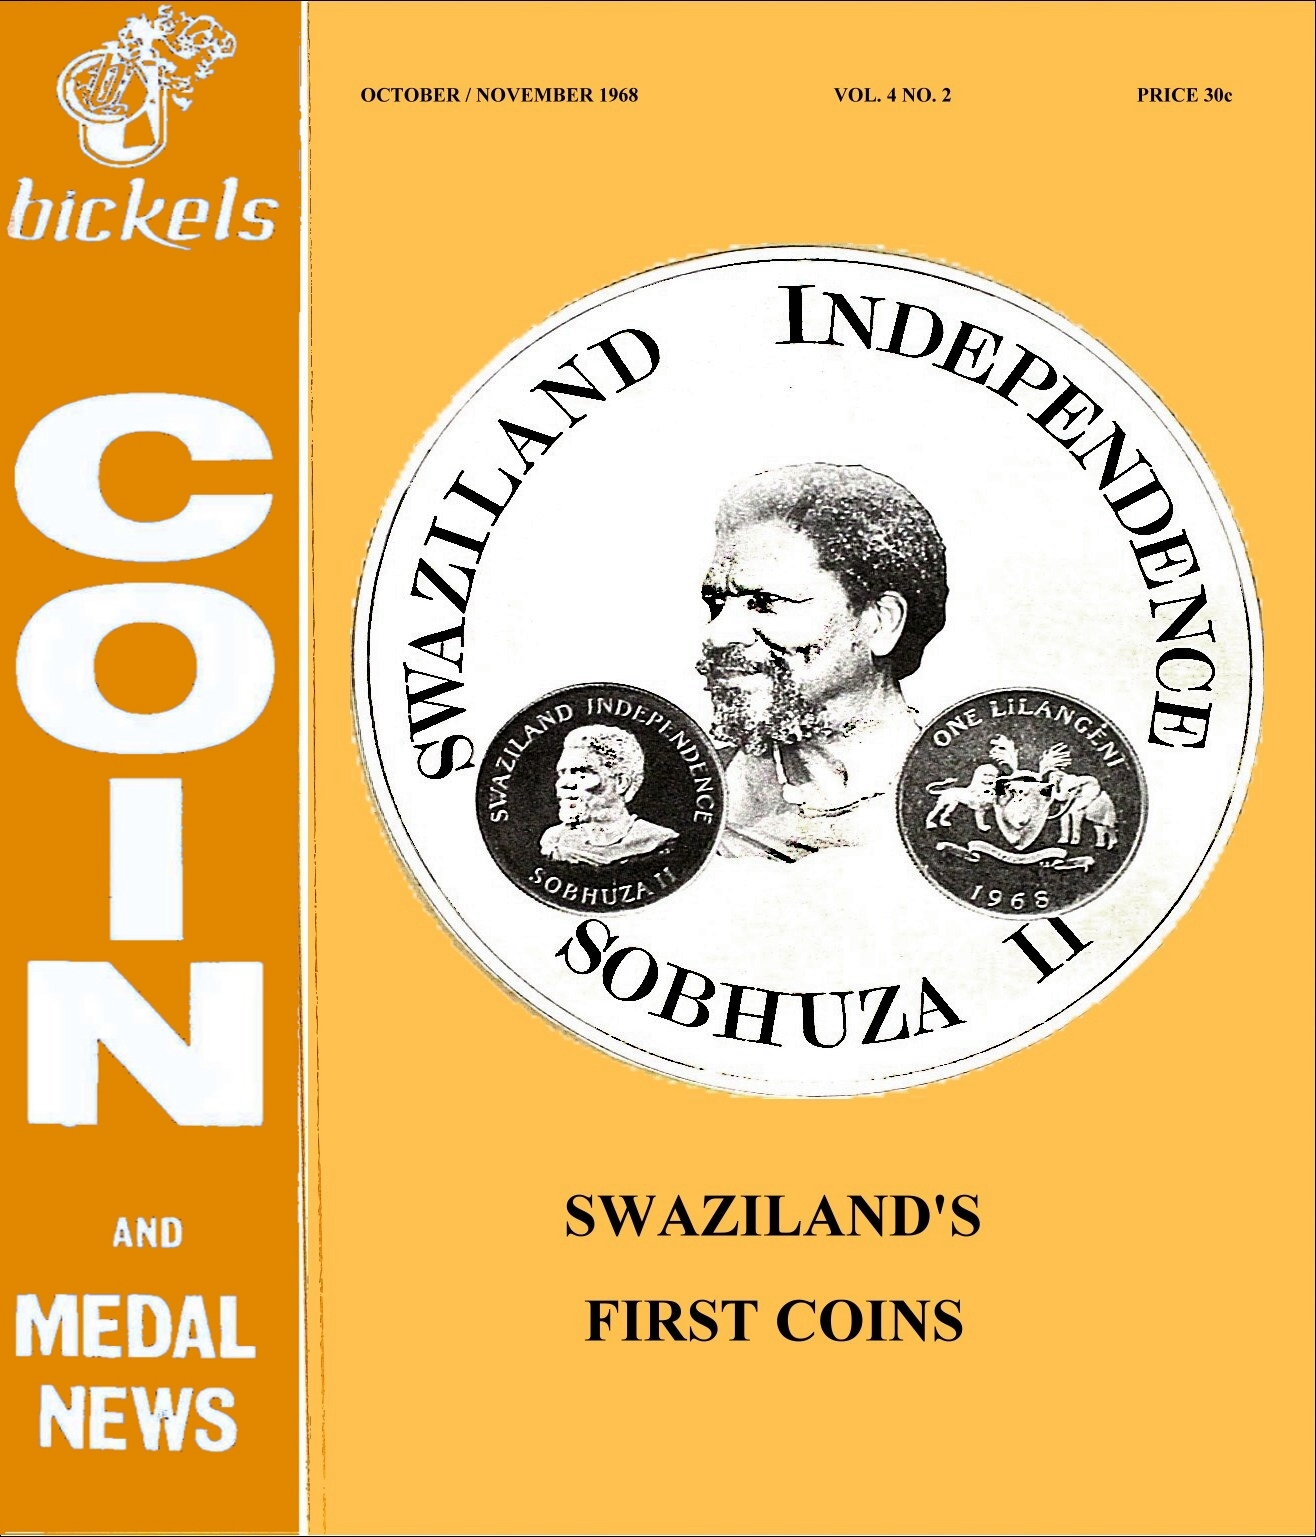 Bickels Coin & Medal News October November 1968 Vol 4 No 2